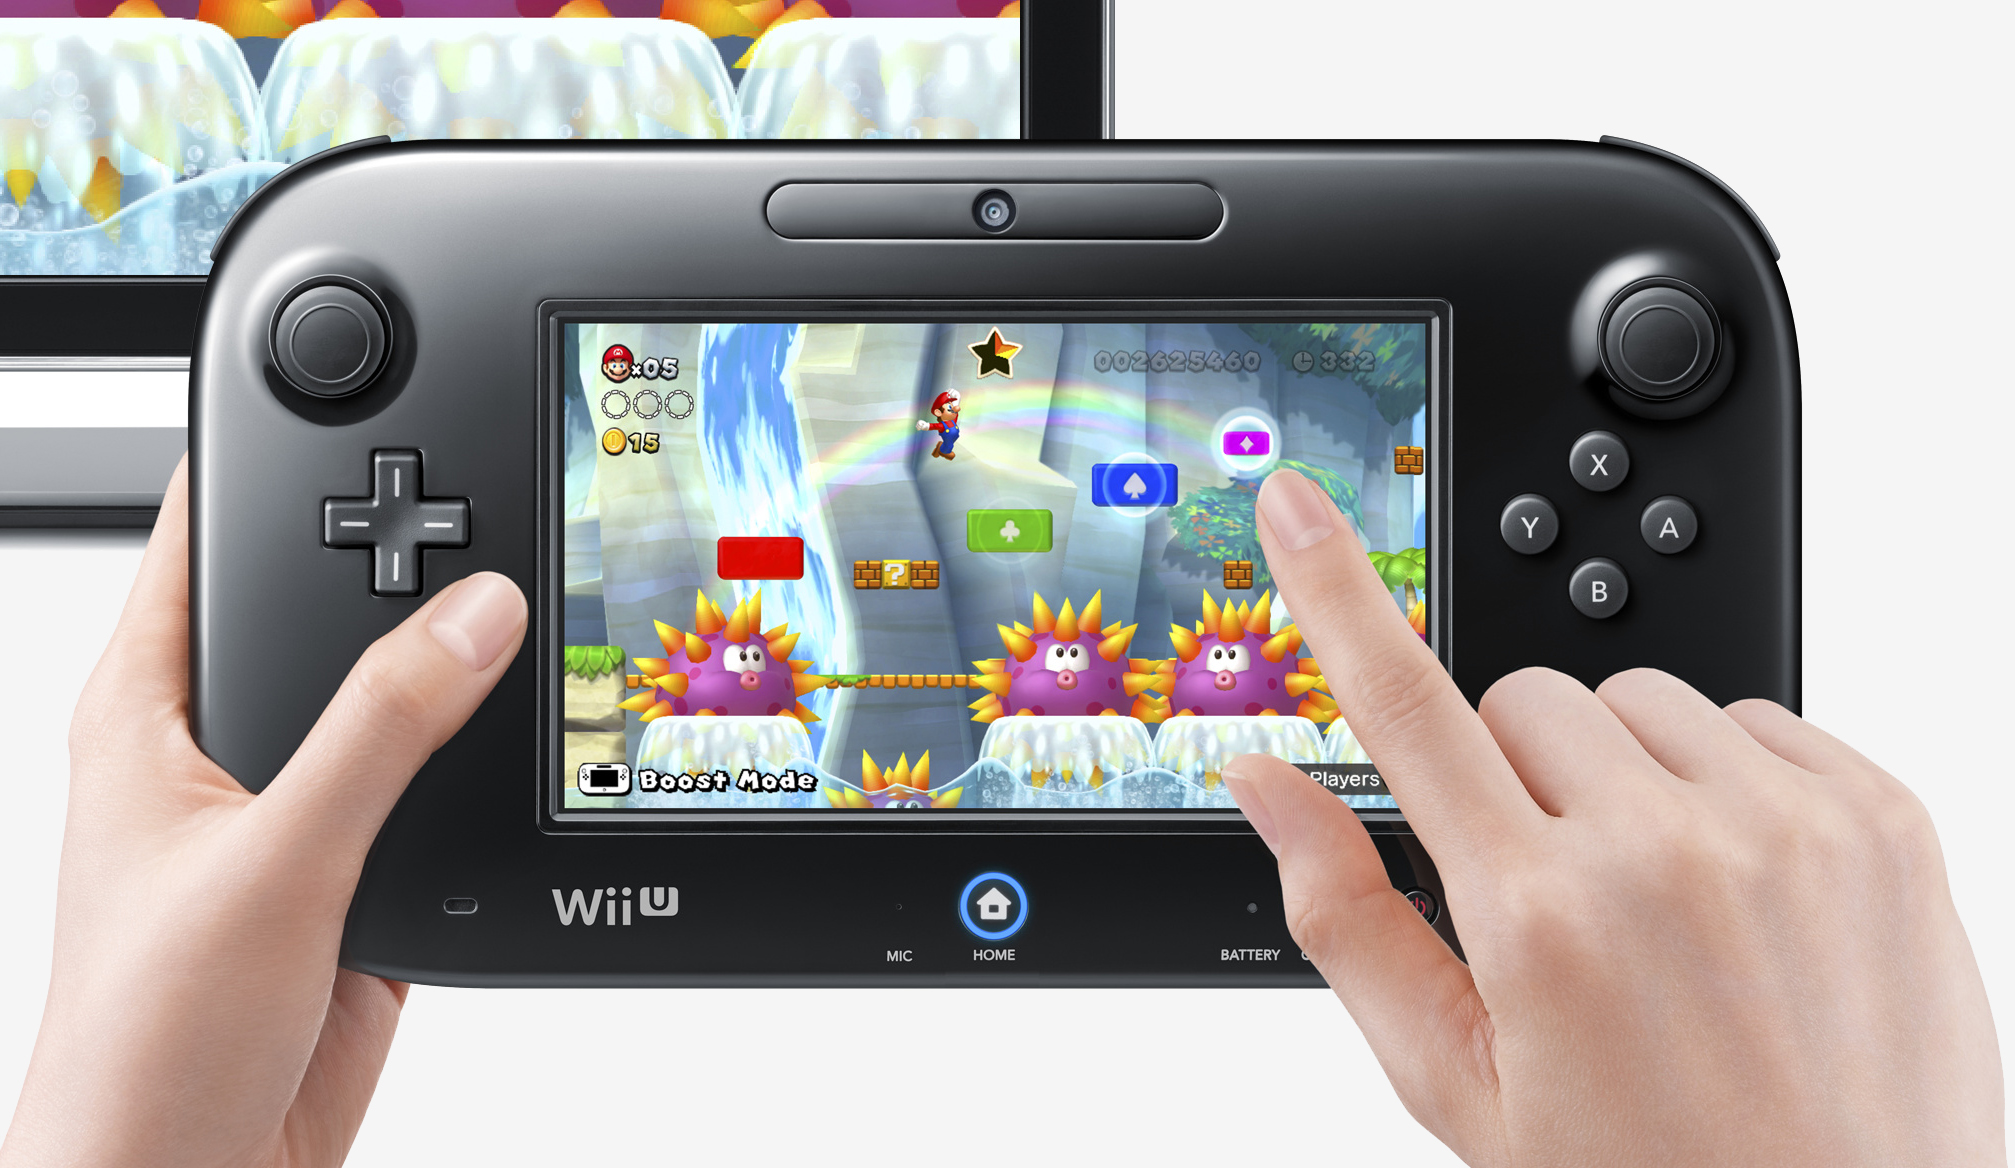 Nintendo rumored to be halting Wii U production, company denies it